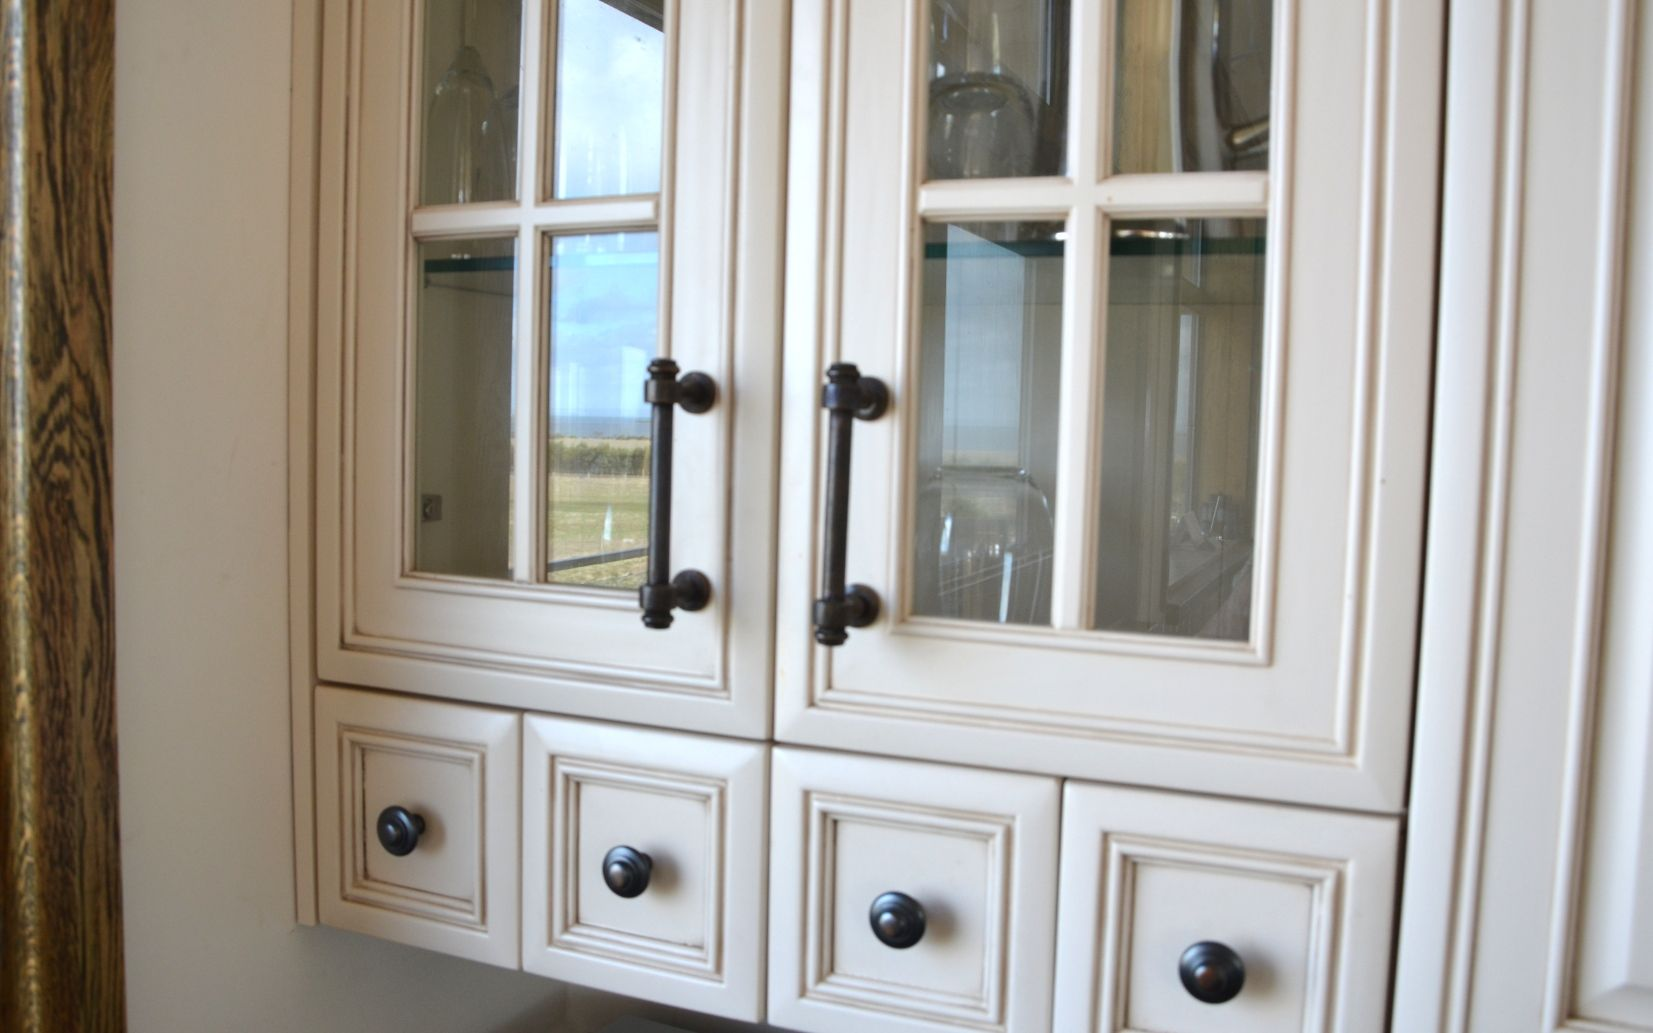 Customer Photo Of Kitchen Cabinets With A Beautiful Farm Reflection. Get  This Look With Schots